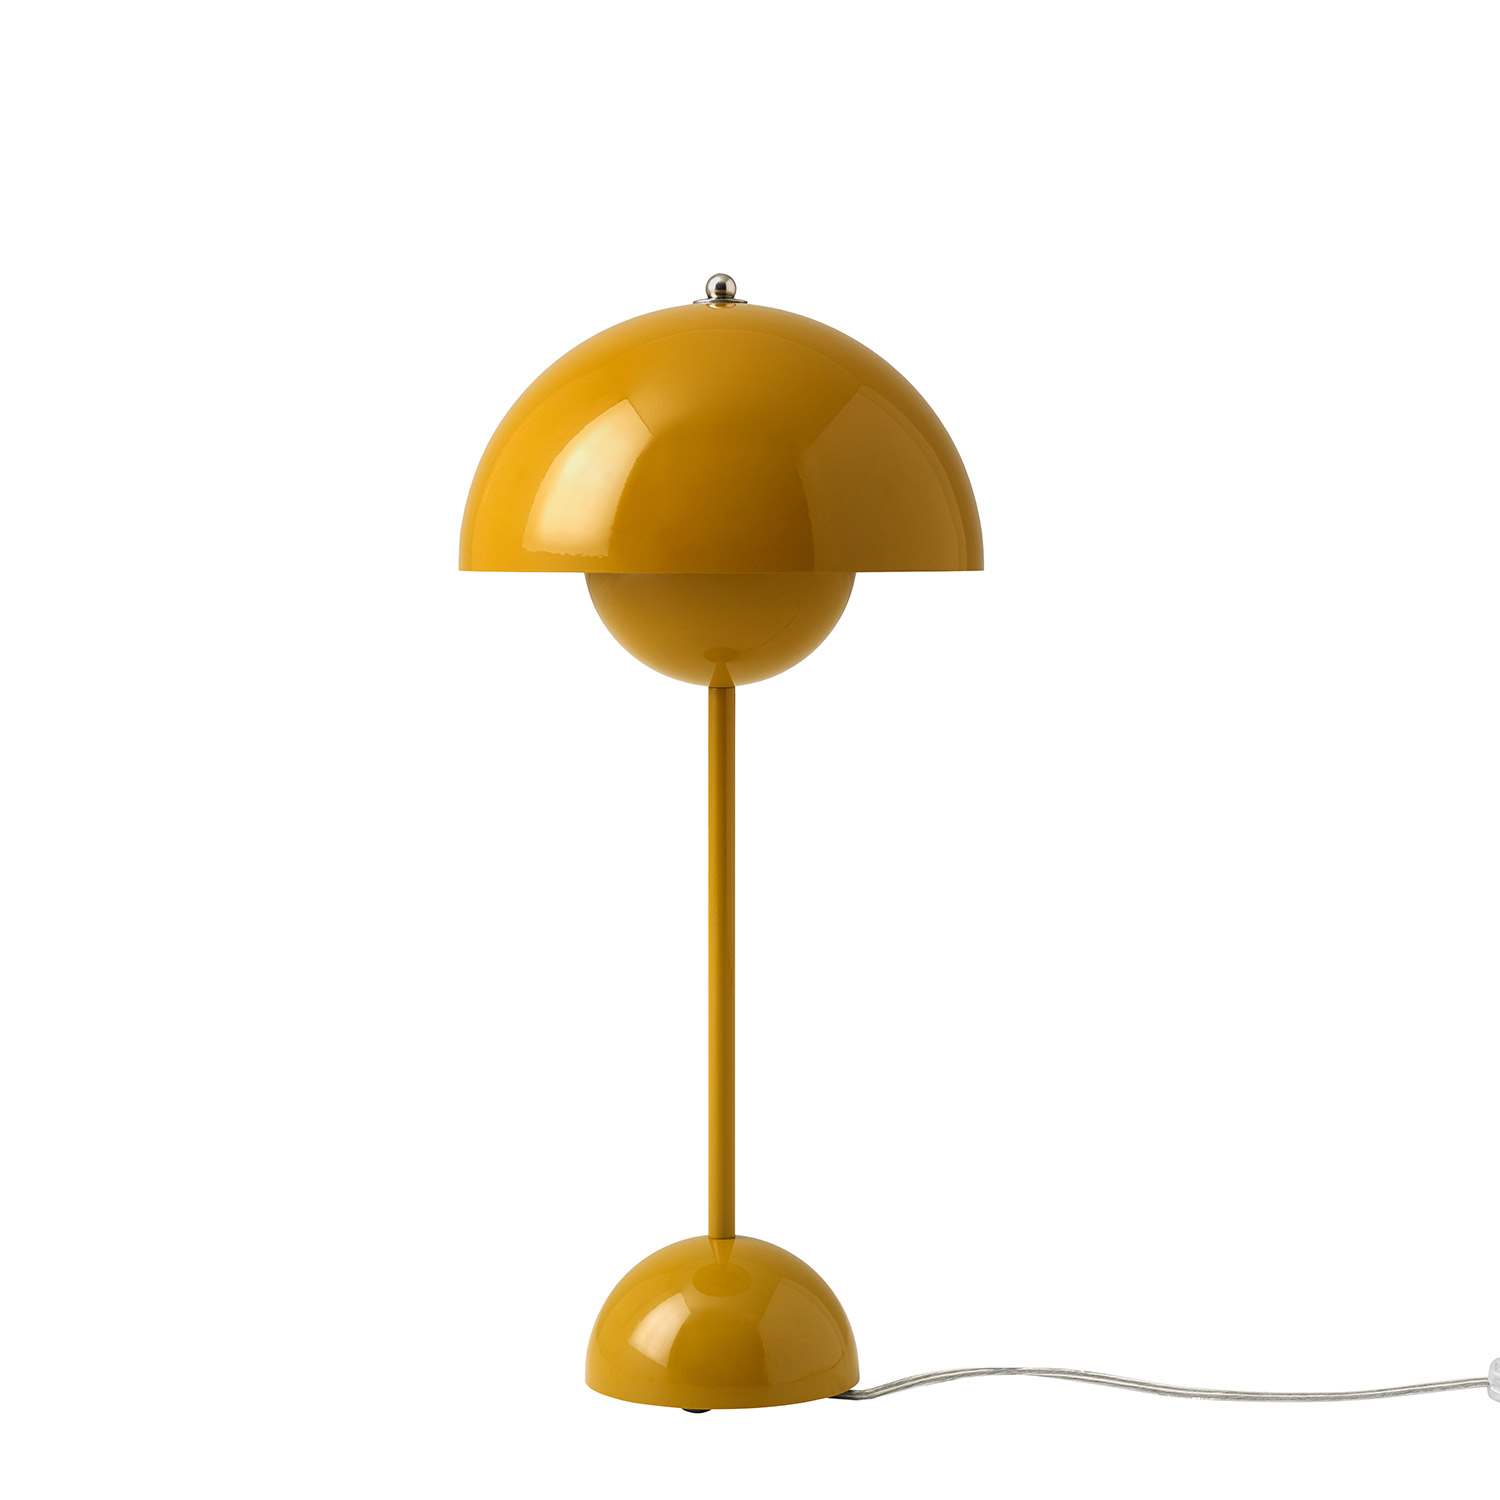 Bilde av &Tradition-Flowerpot Bordlampe Vp3, Mustard